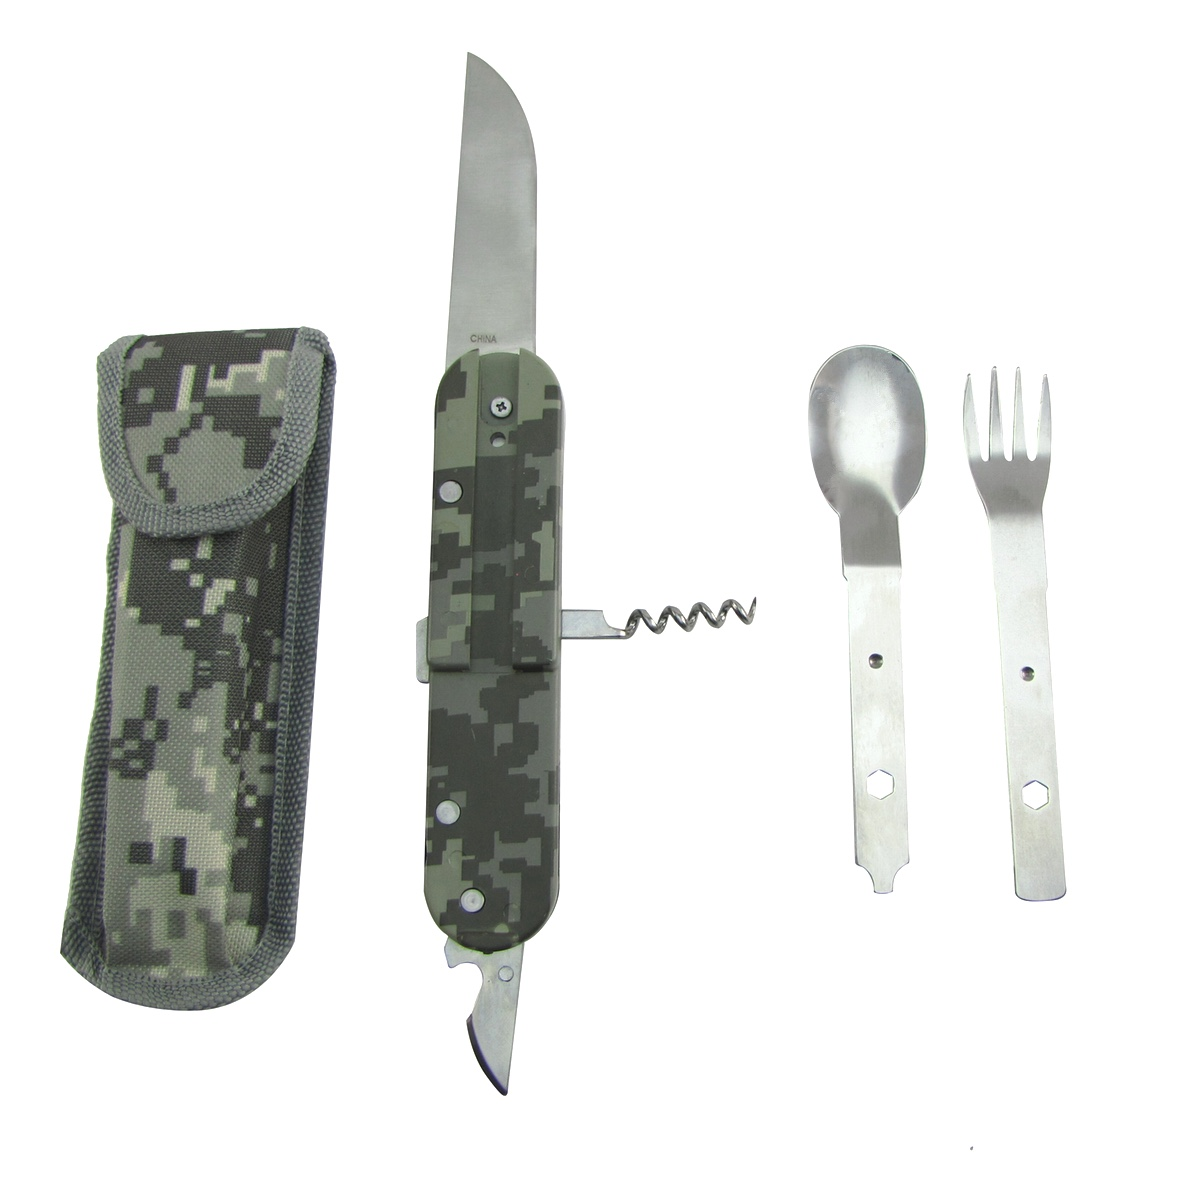 5 Multi Tool Hobo Camping Pocket Knife w Camp Spoon&Fork Emergency Survival Gear by